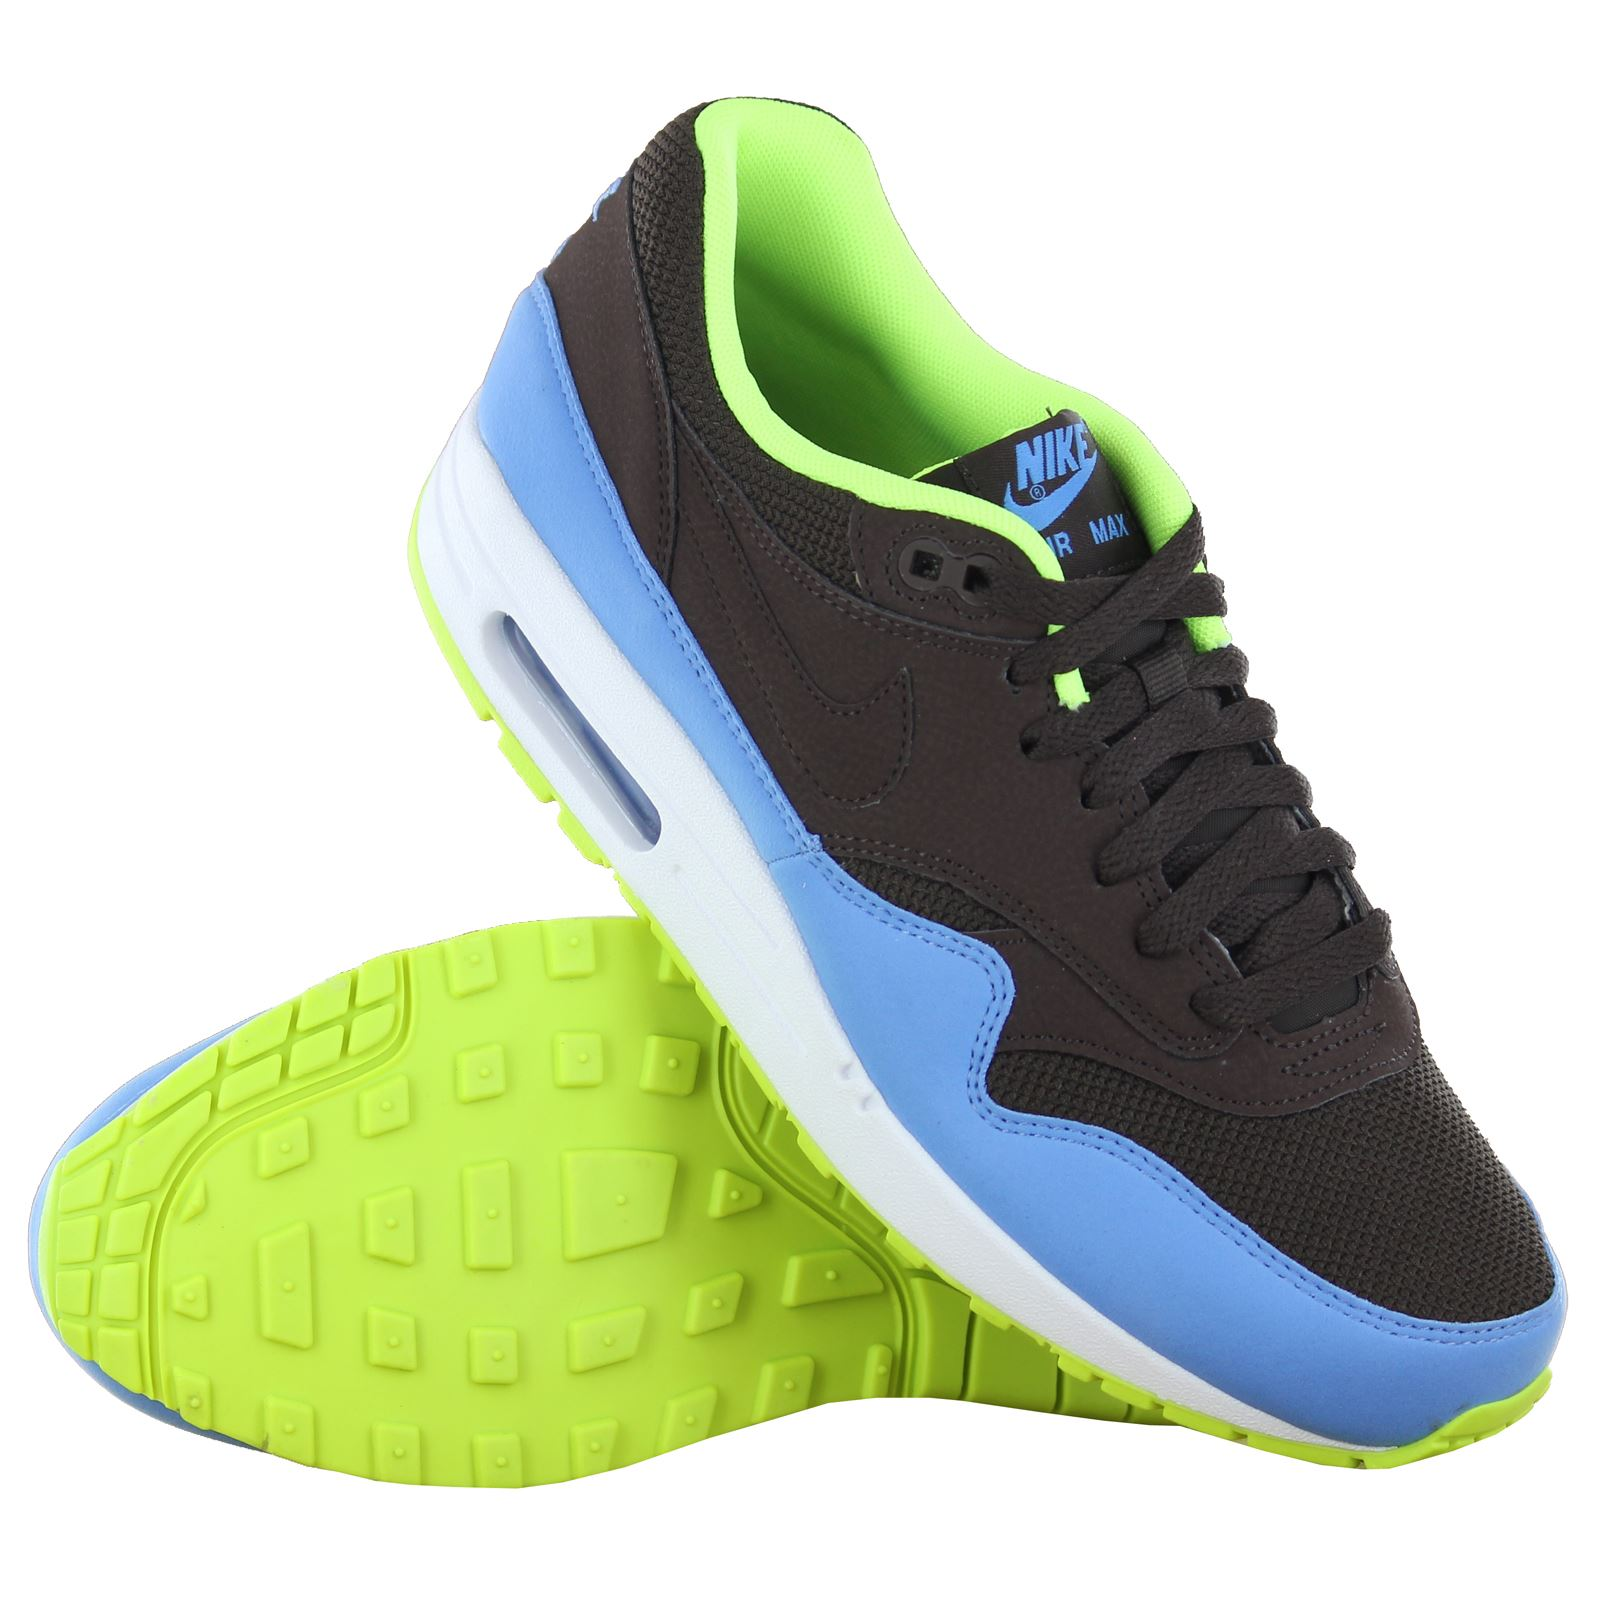 Nike-Air-Max-1-Essential-Leather-Mens-Womens-Unisex-Low-Top-Trainers-Sport-Shoes